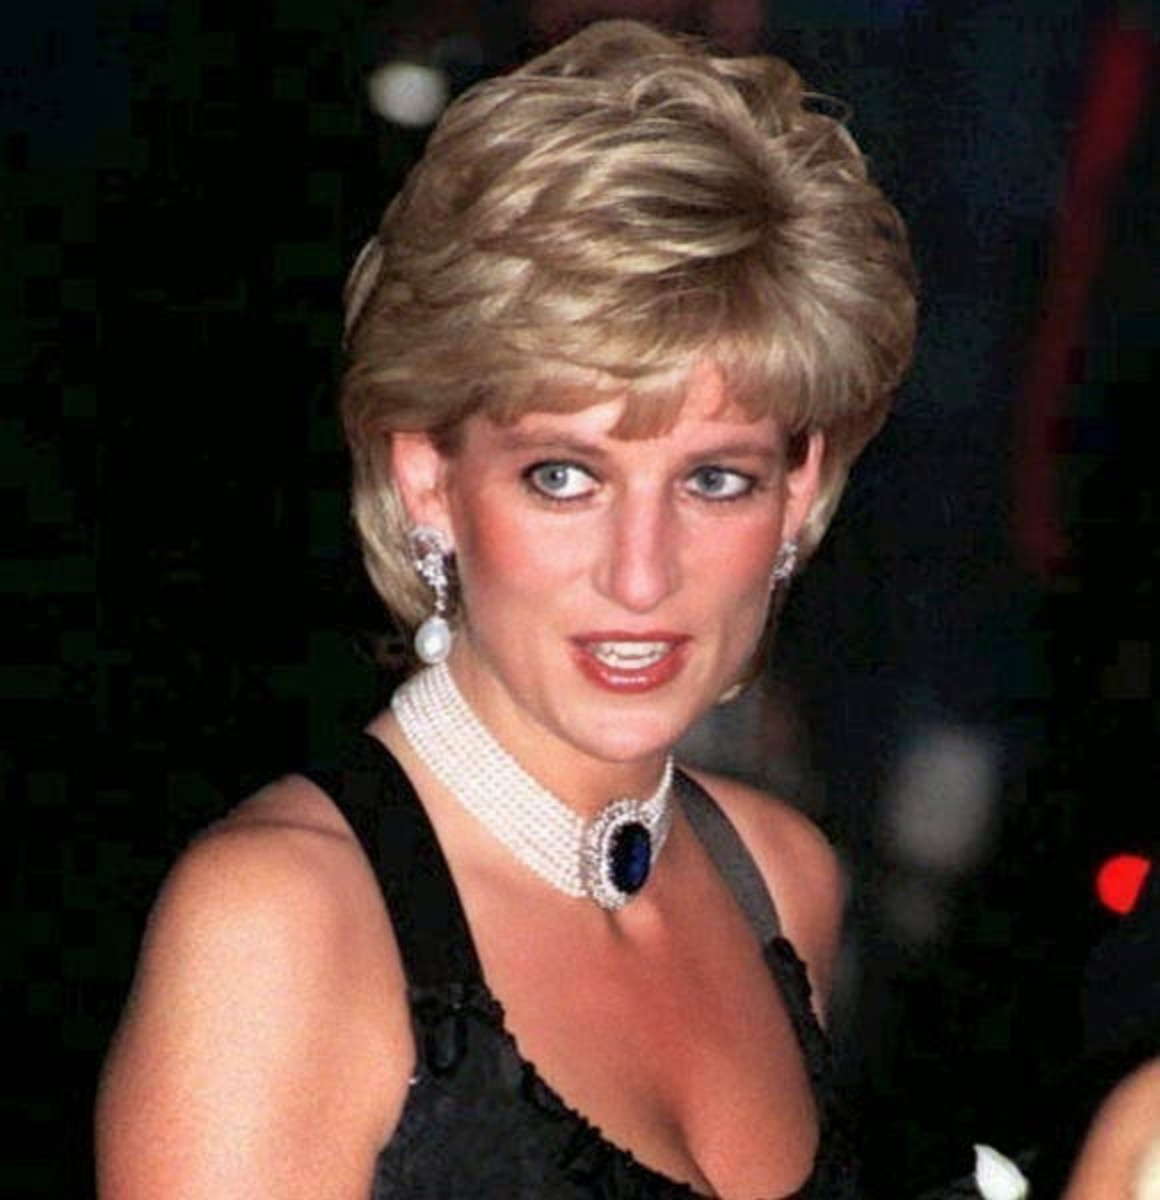 Princess Diana wore chokers in the 1980's and 90's.